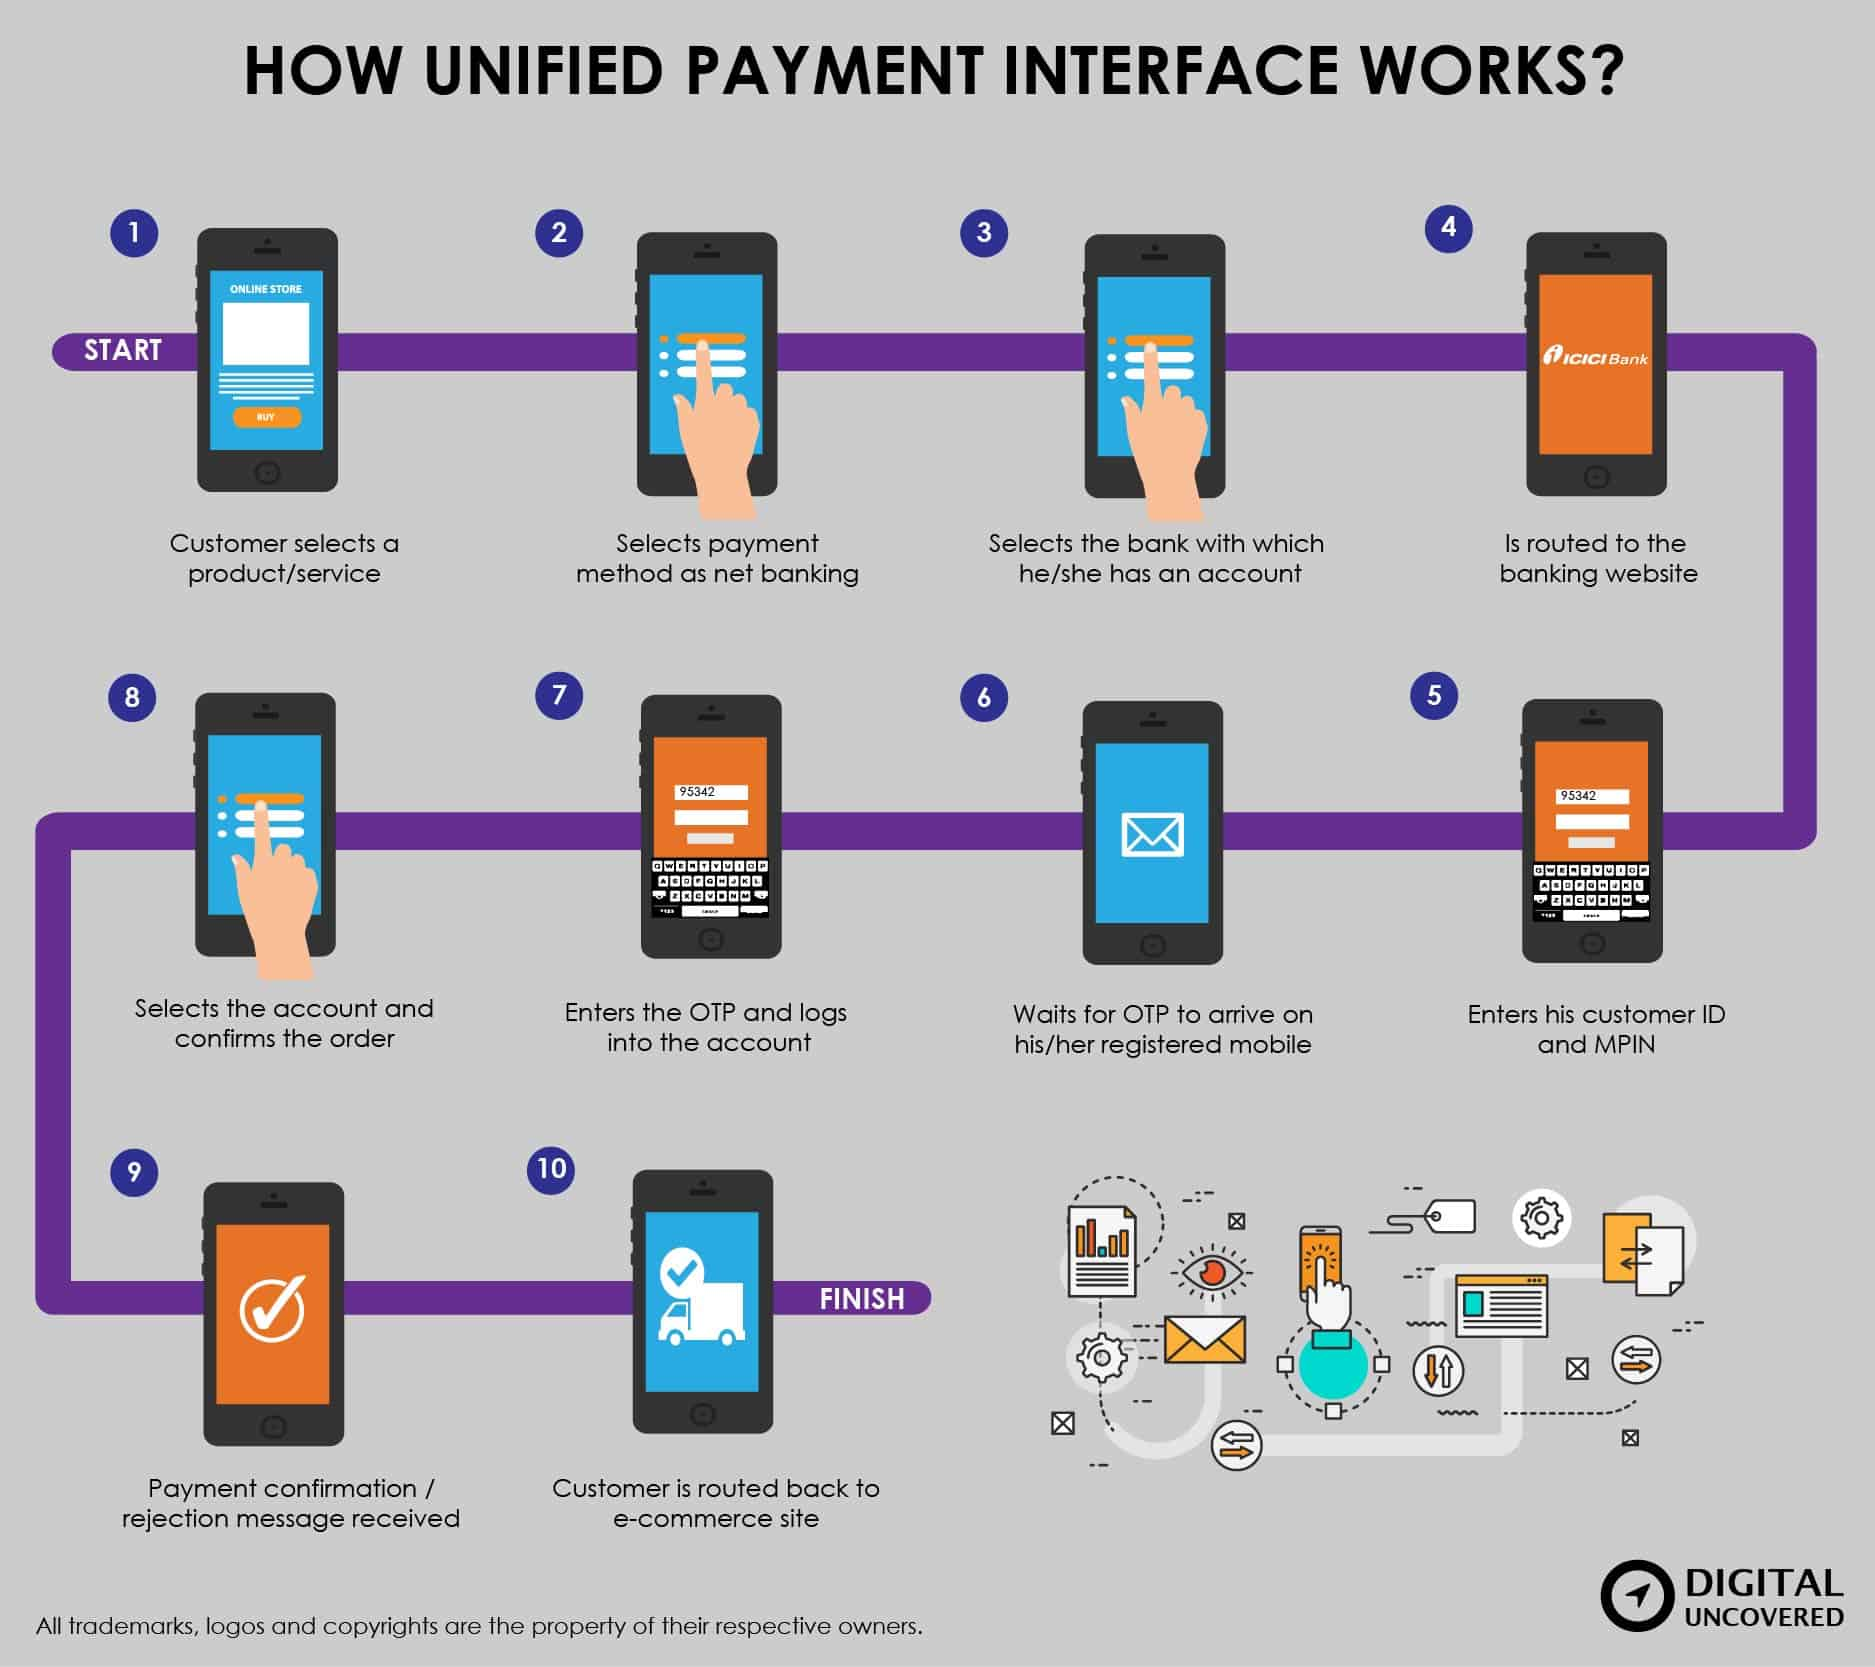 Unified-Payment-Interface-Works